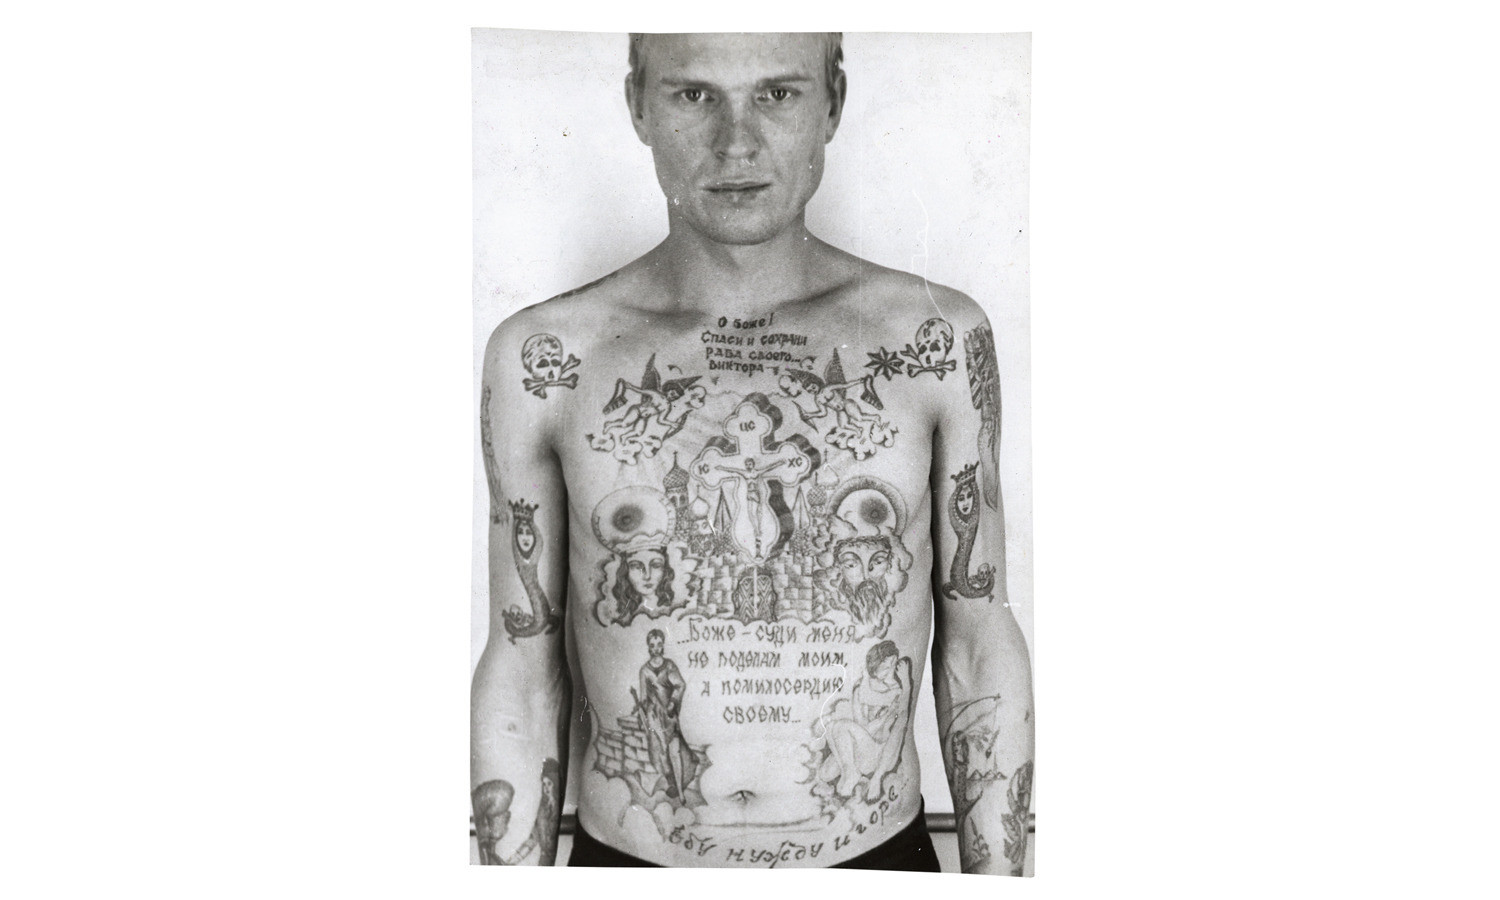 The Visual Encyclopedia of Russian Prison Tattoos - VICE